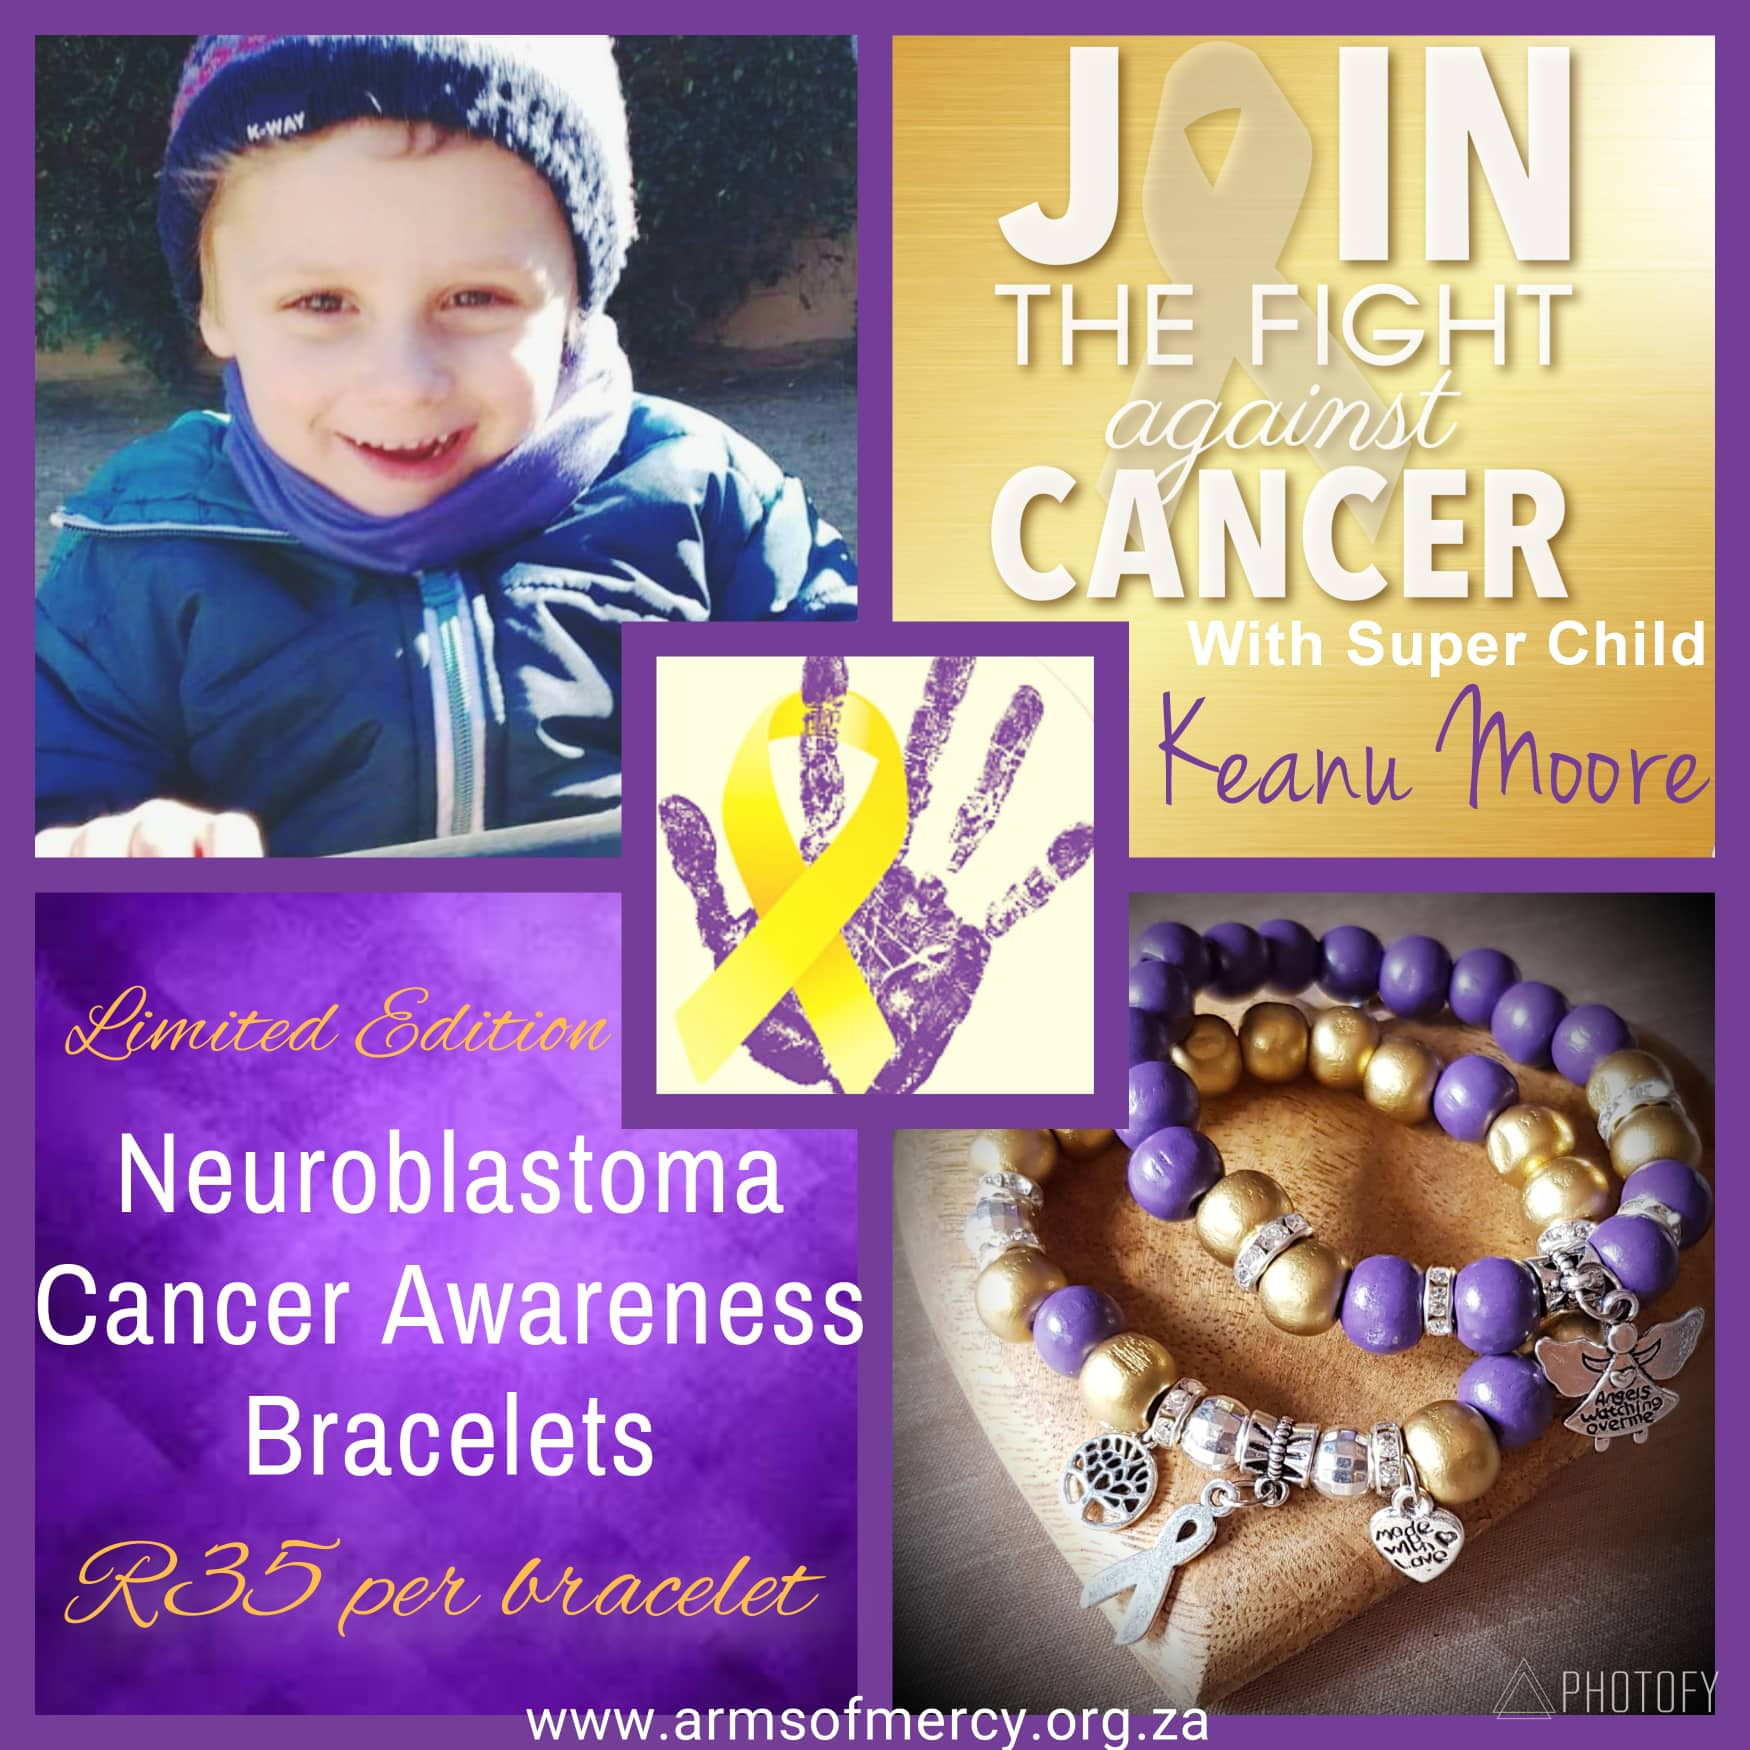 NEW Neuroblastoma Cancer Awareness Bracelets for Keanu Moore - Arms of Mercy NPC